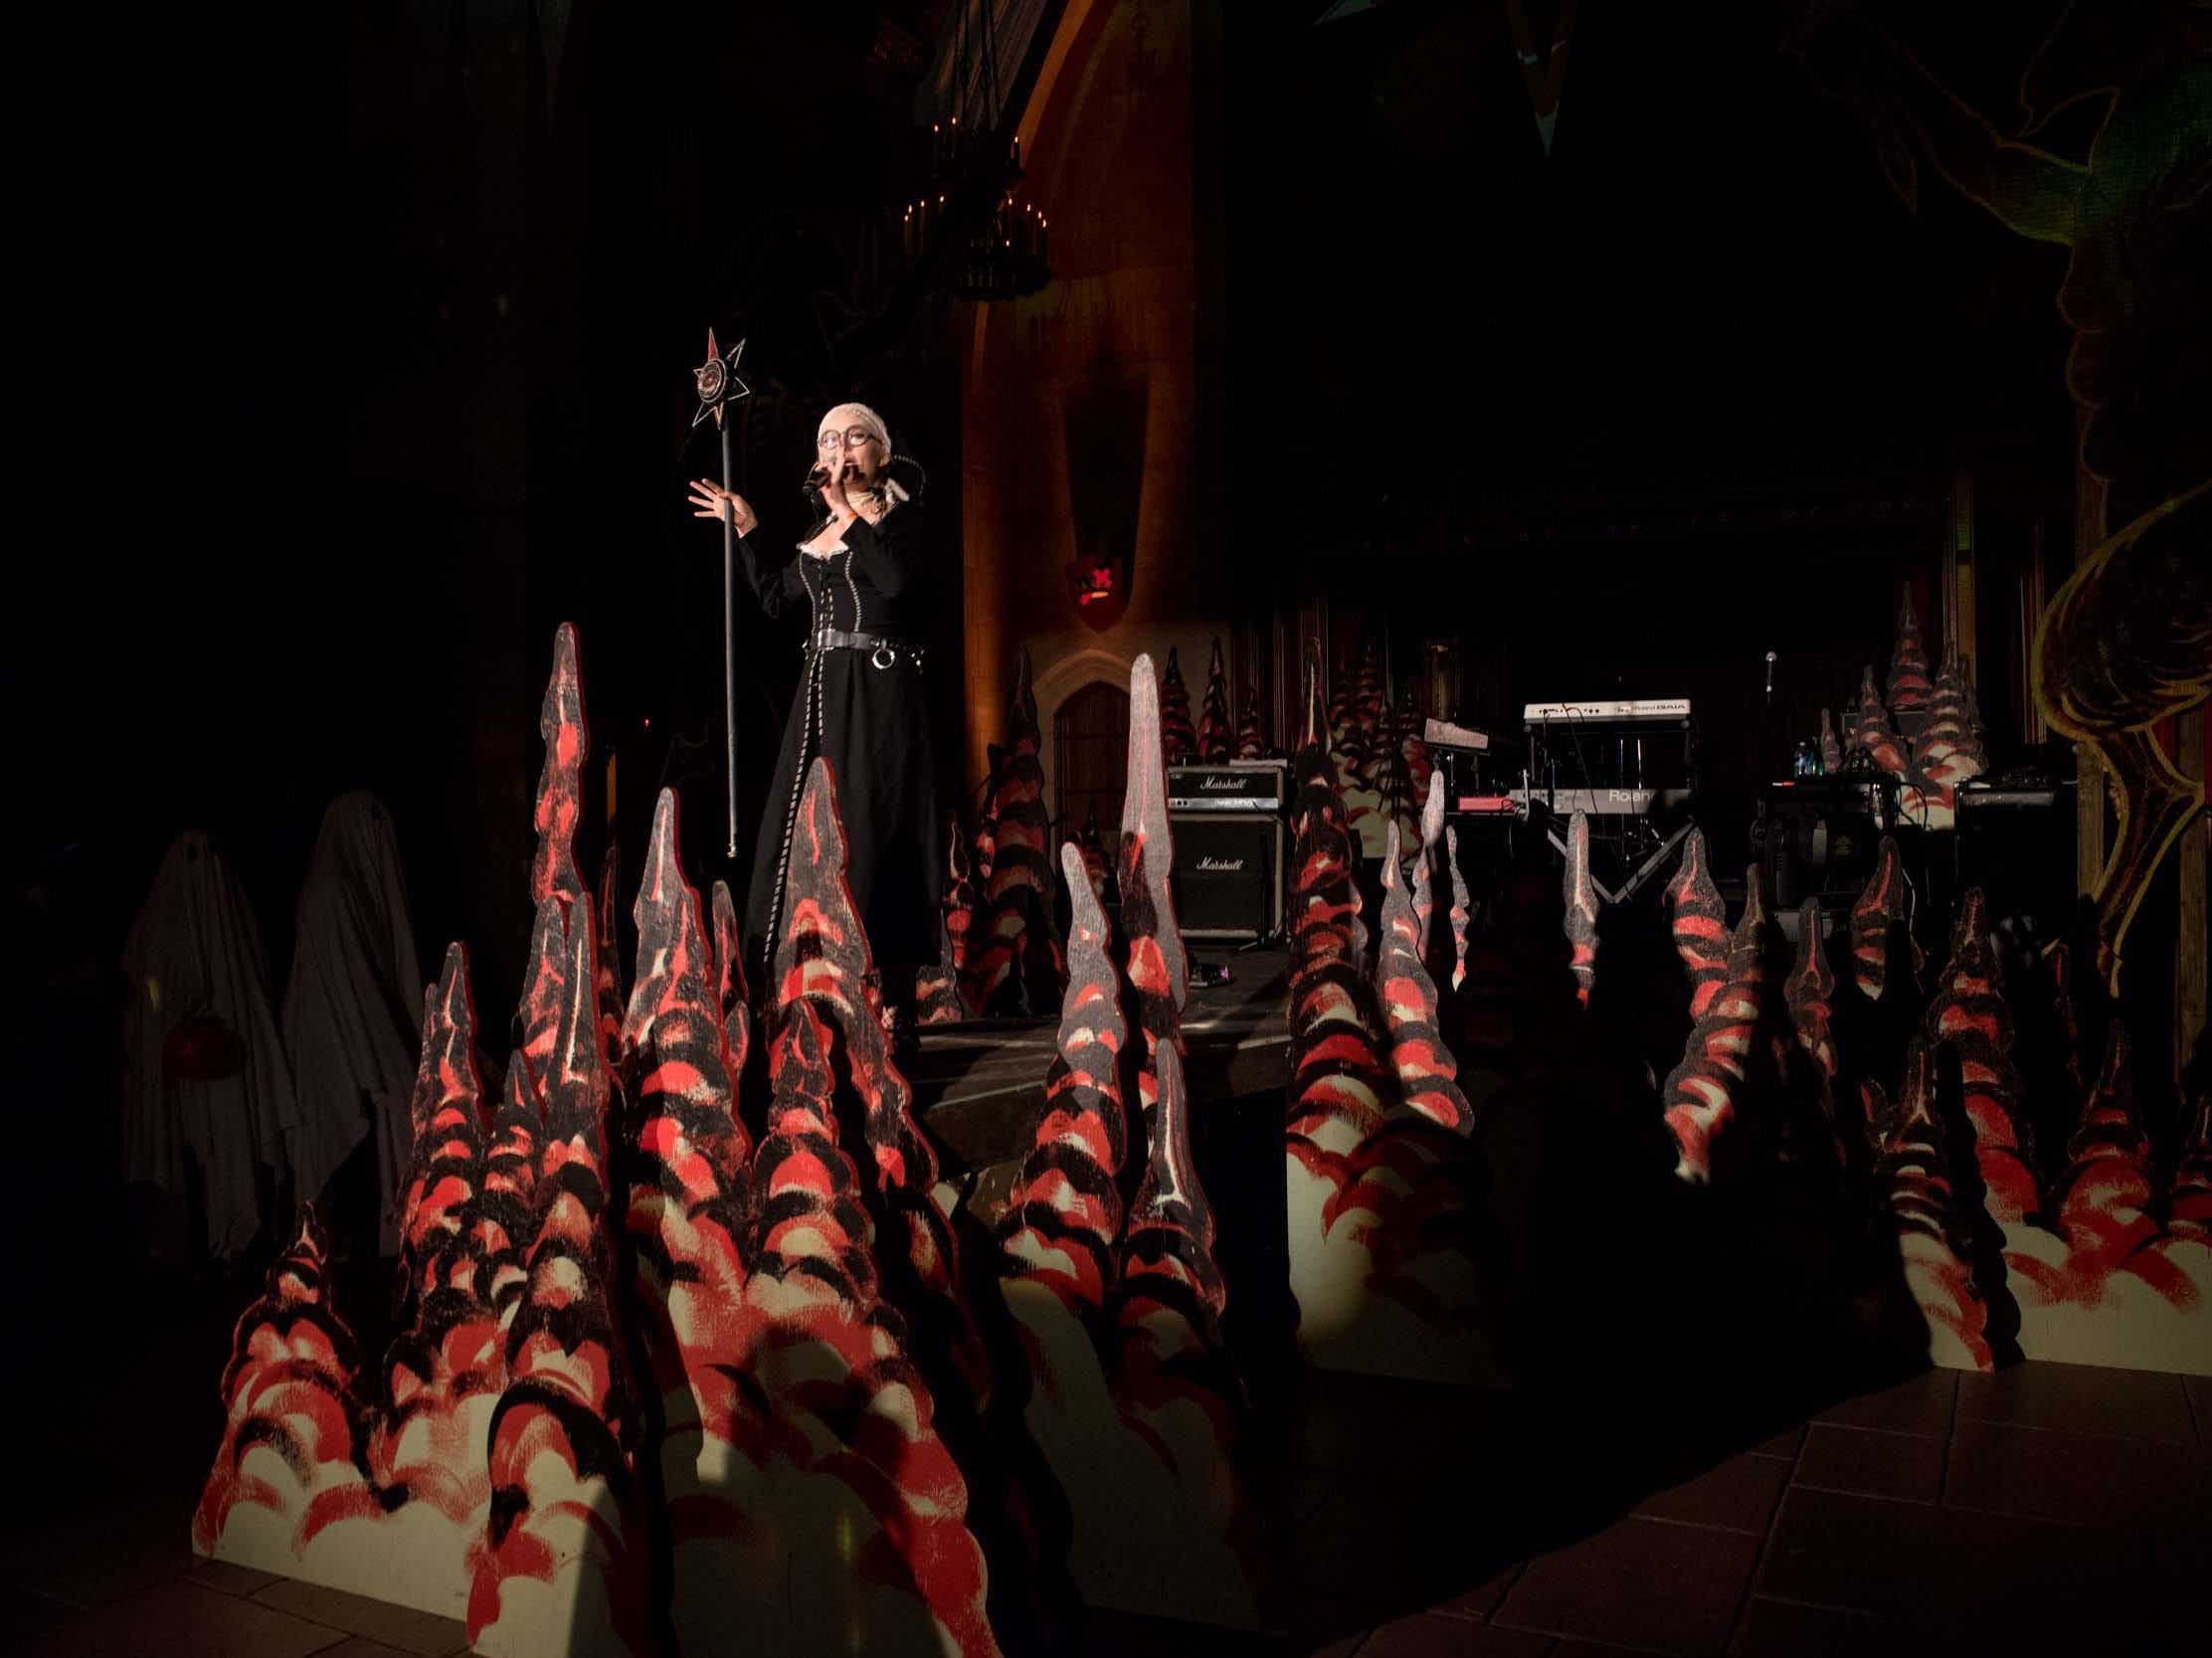 Theatre Bizarre, an annual Halloween masquerade and immersive art installation, returned to the Masonic Temple in Detroit on Saturday, October 13, 2018. The R-rated, multi-sensory masquerade included music acts, burlesque dancers, suspension artists and sideshow oddities.